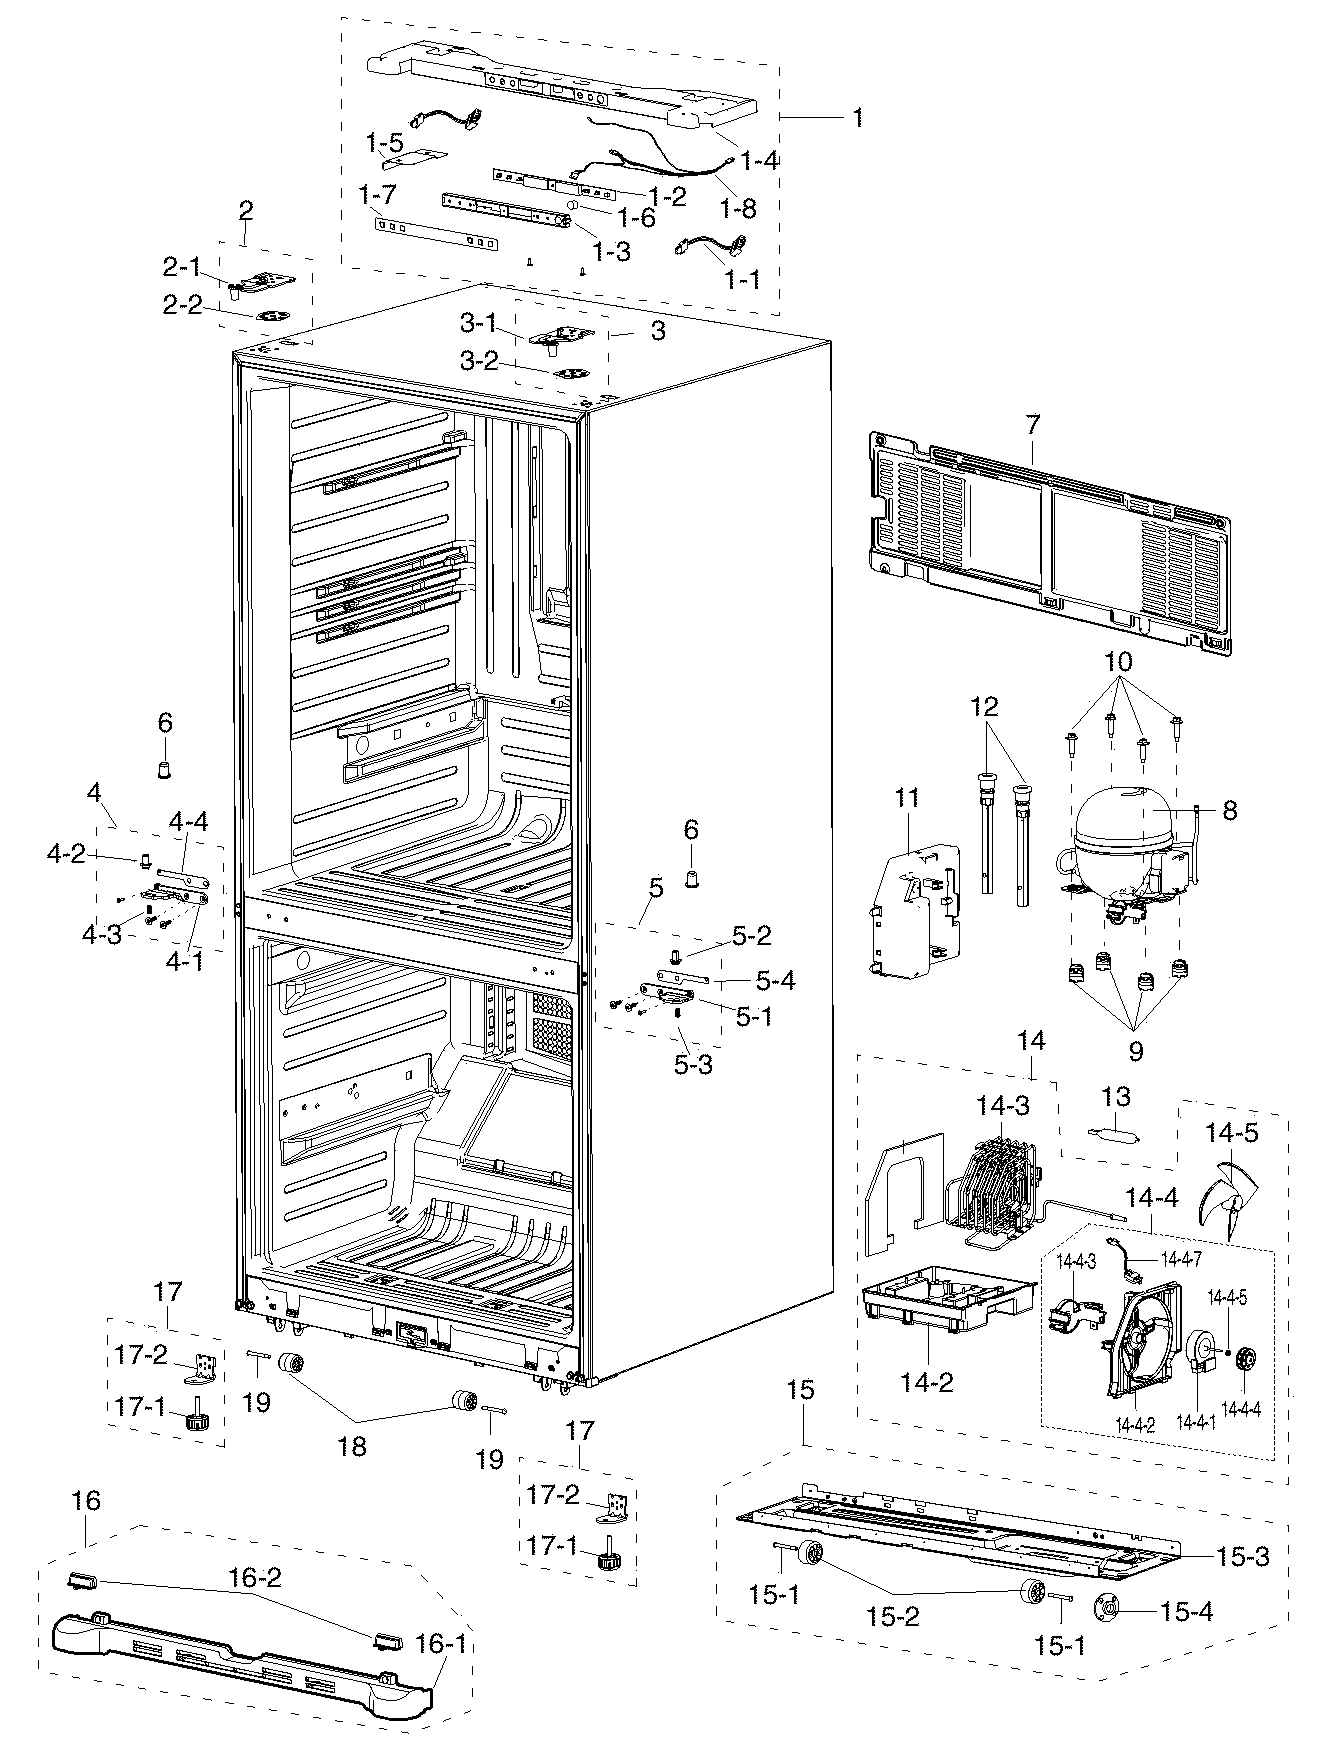 Refrigerator Parts: Samsung Refrigerator Parts Manual